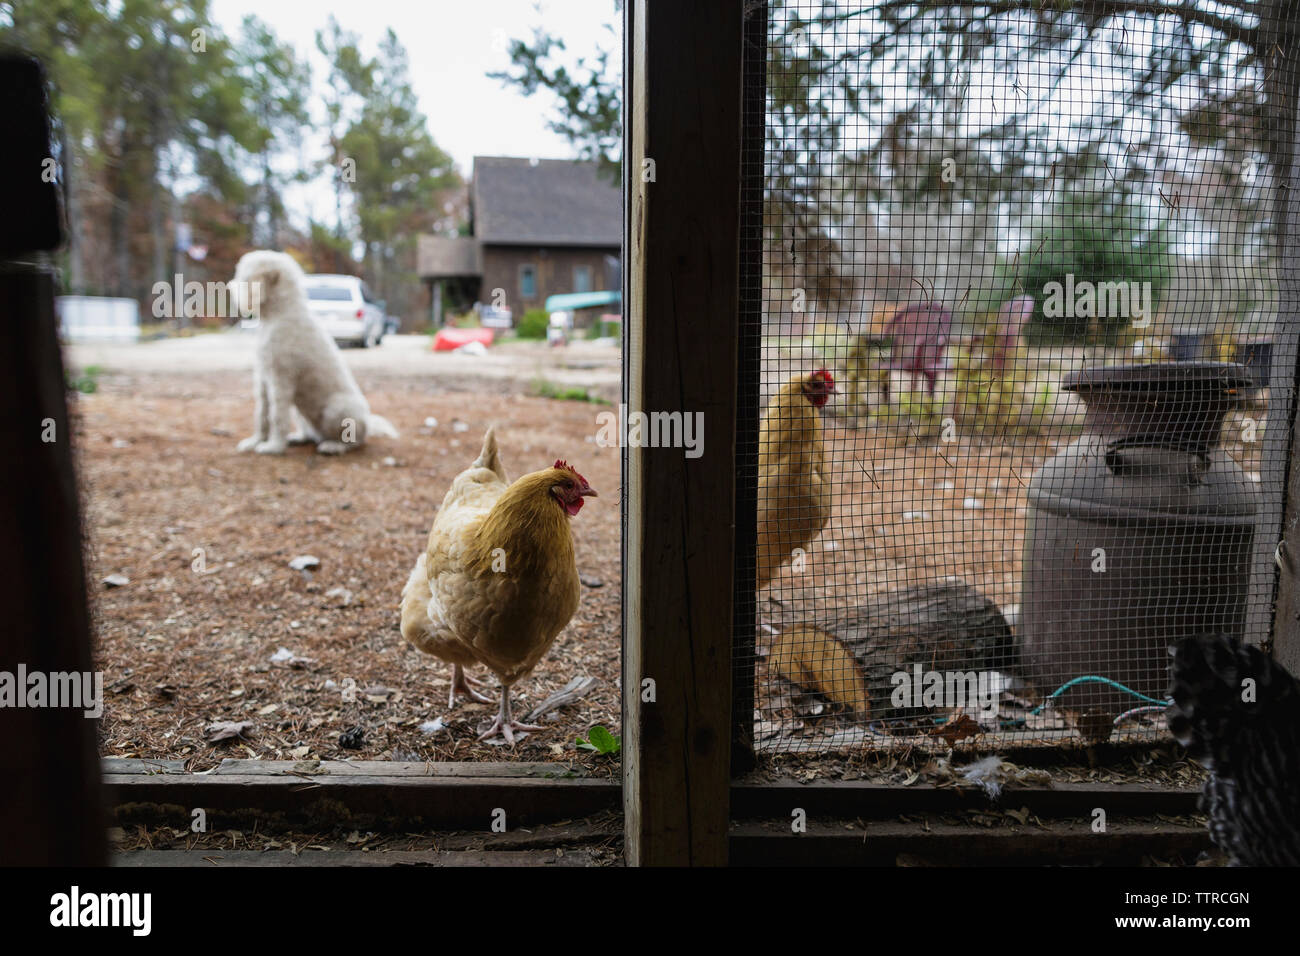 Hens and poodle on field seen through chicken coop - Stock Image